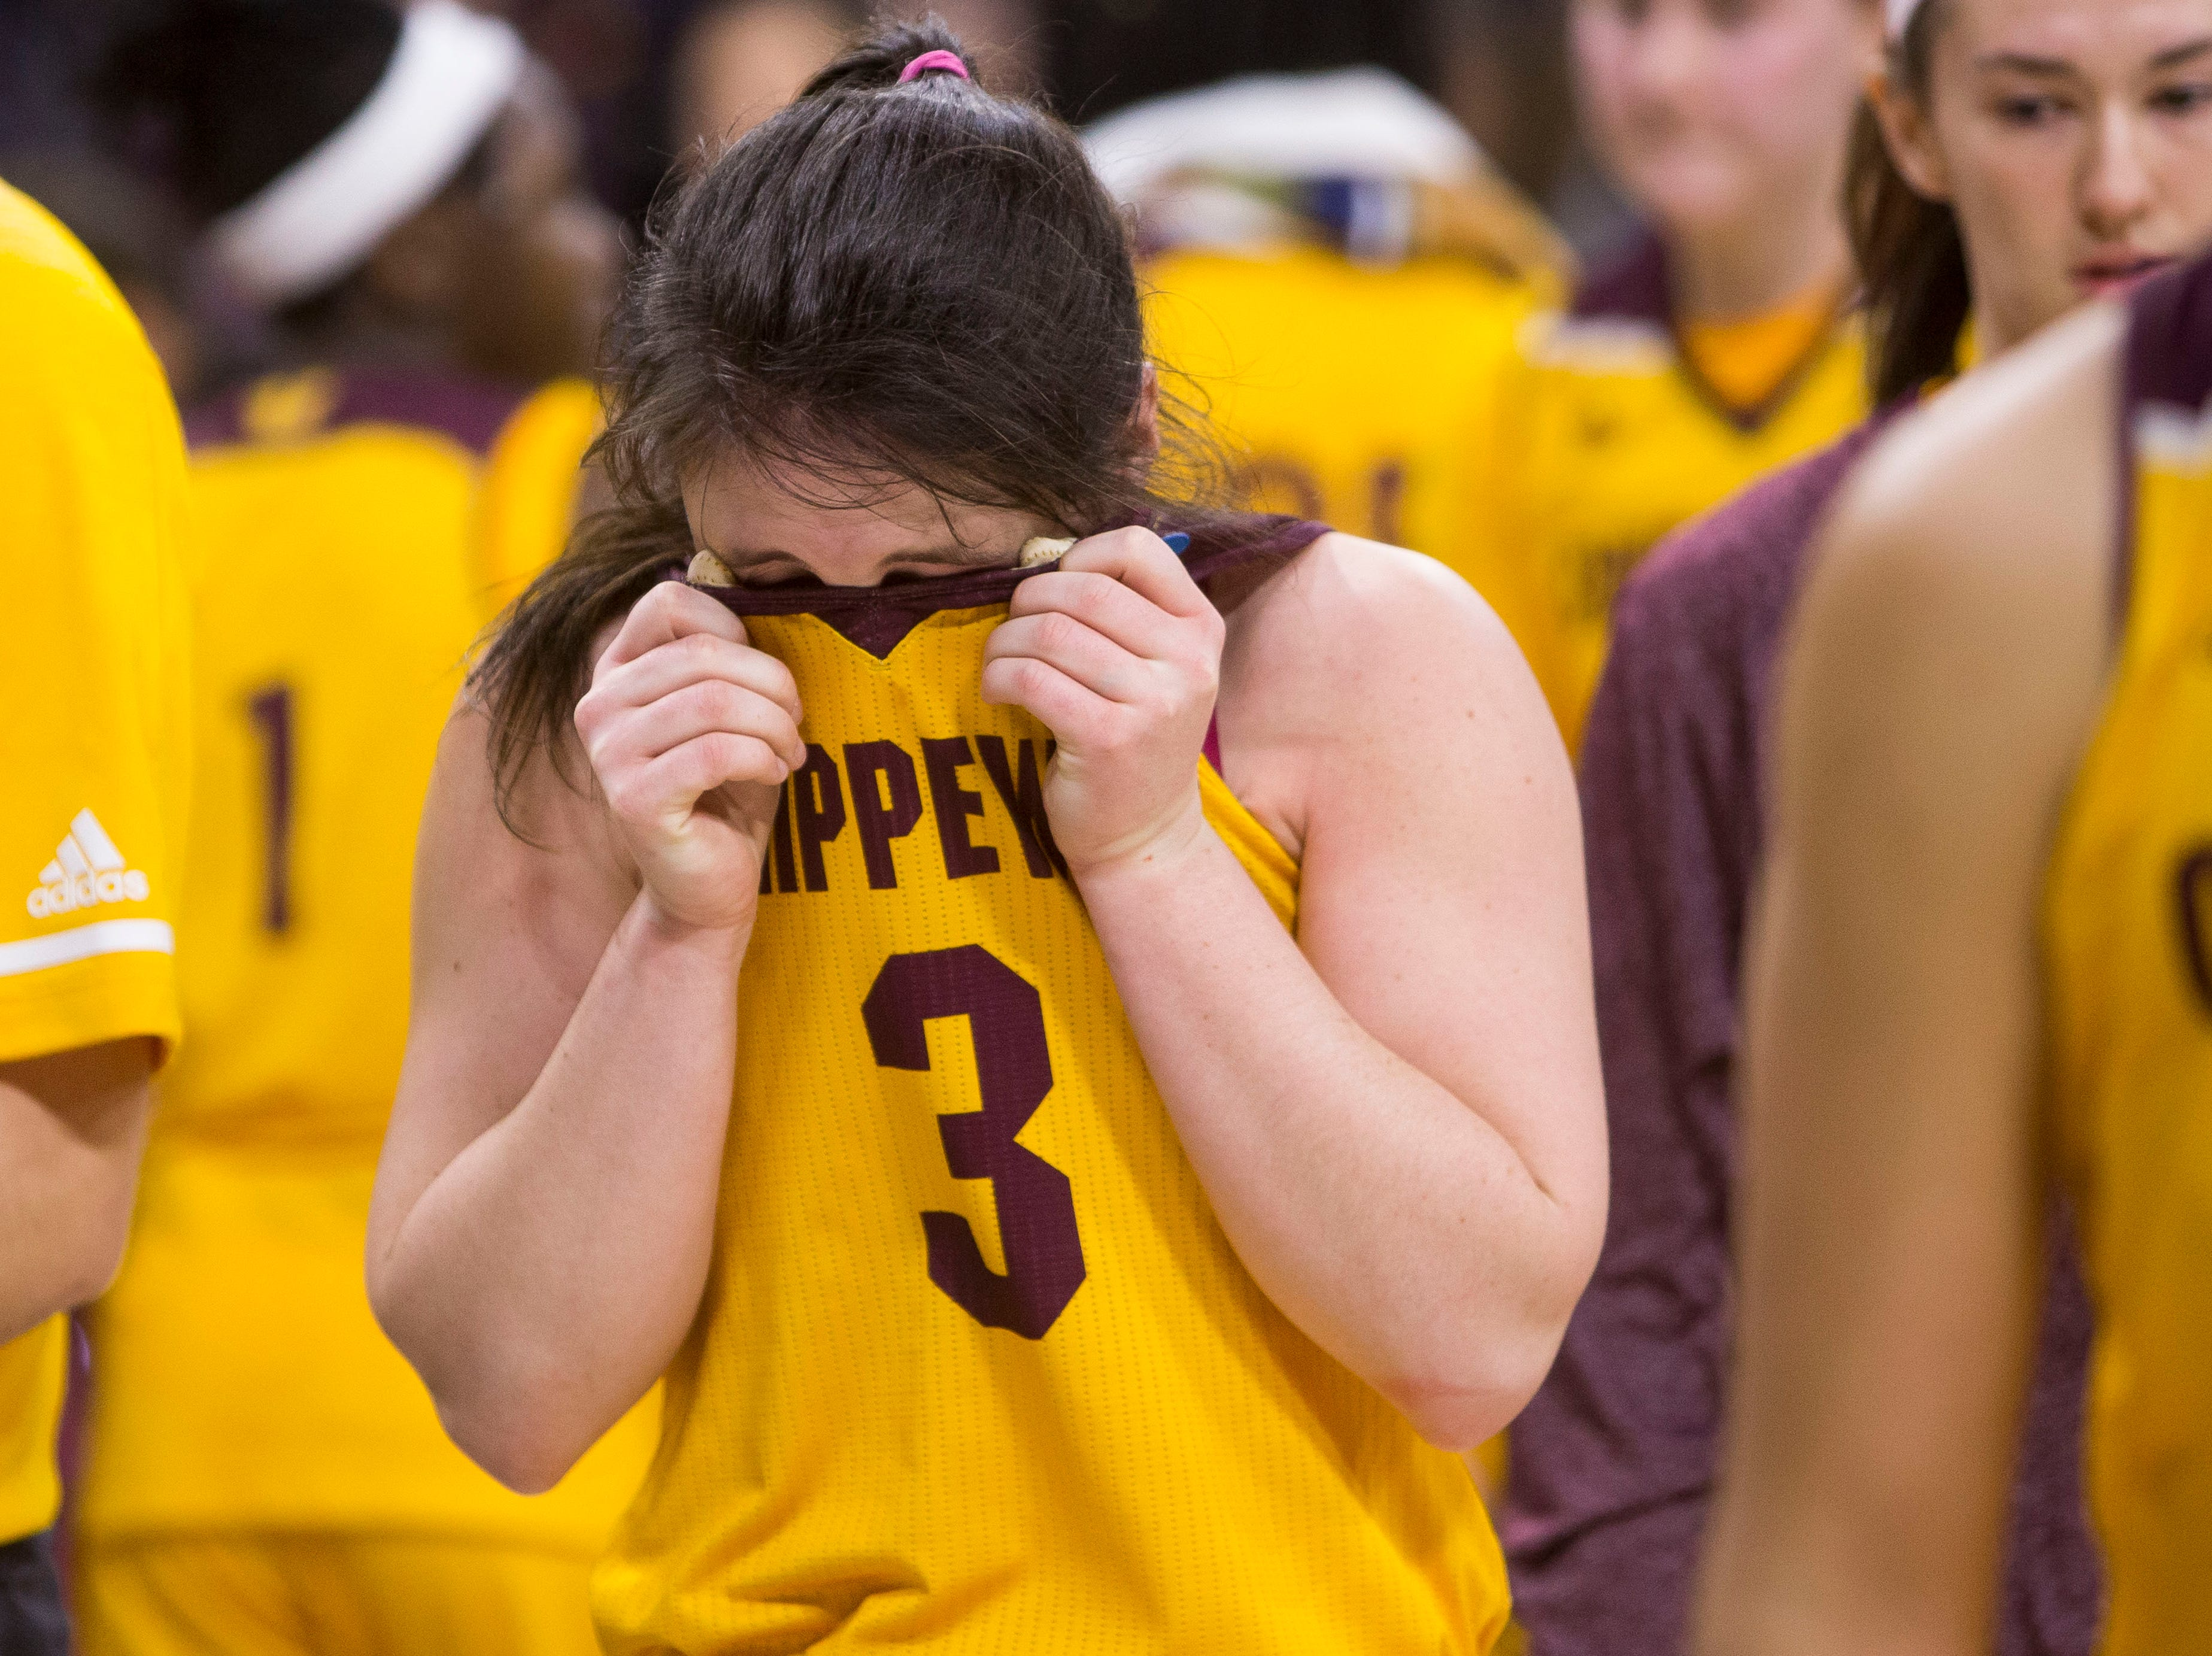 Central Michigan's Presley Hudson becomes emotional as she exits the court following the 88-87 loss to Michigan State in a first-round game in the NCAA women's college basketball tournament in South Bend, Ind., Saturday, March 23, 2019.